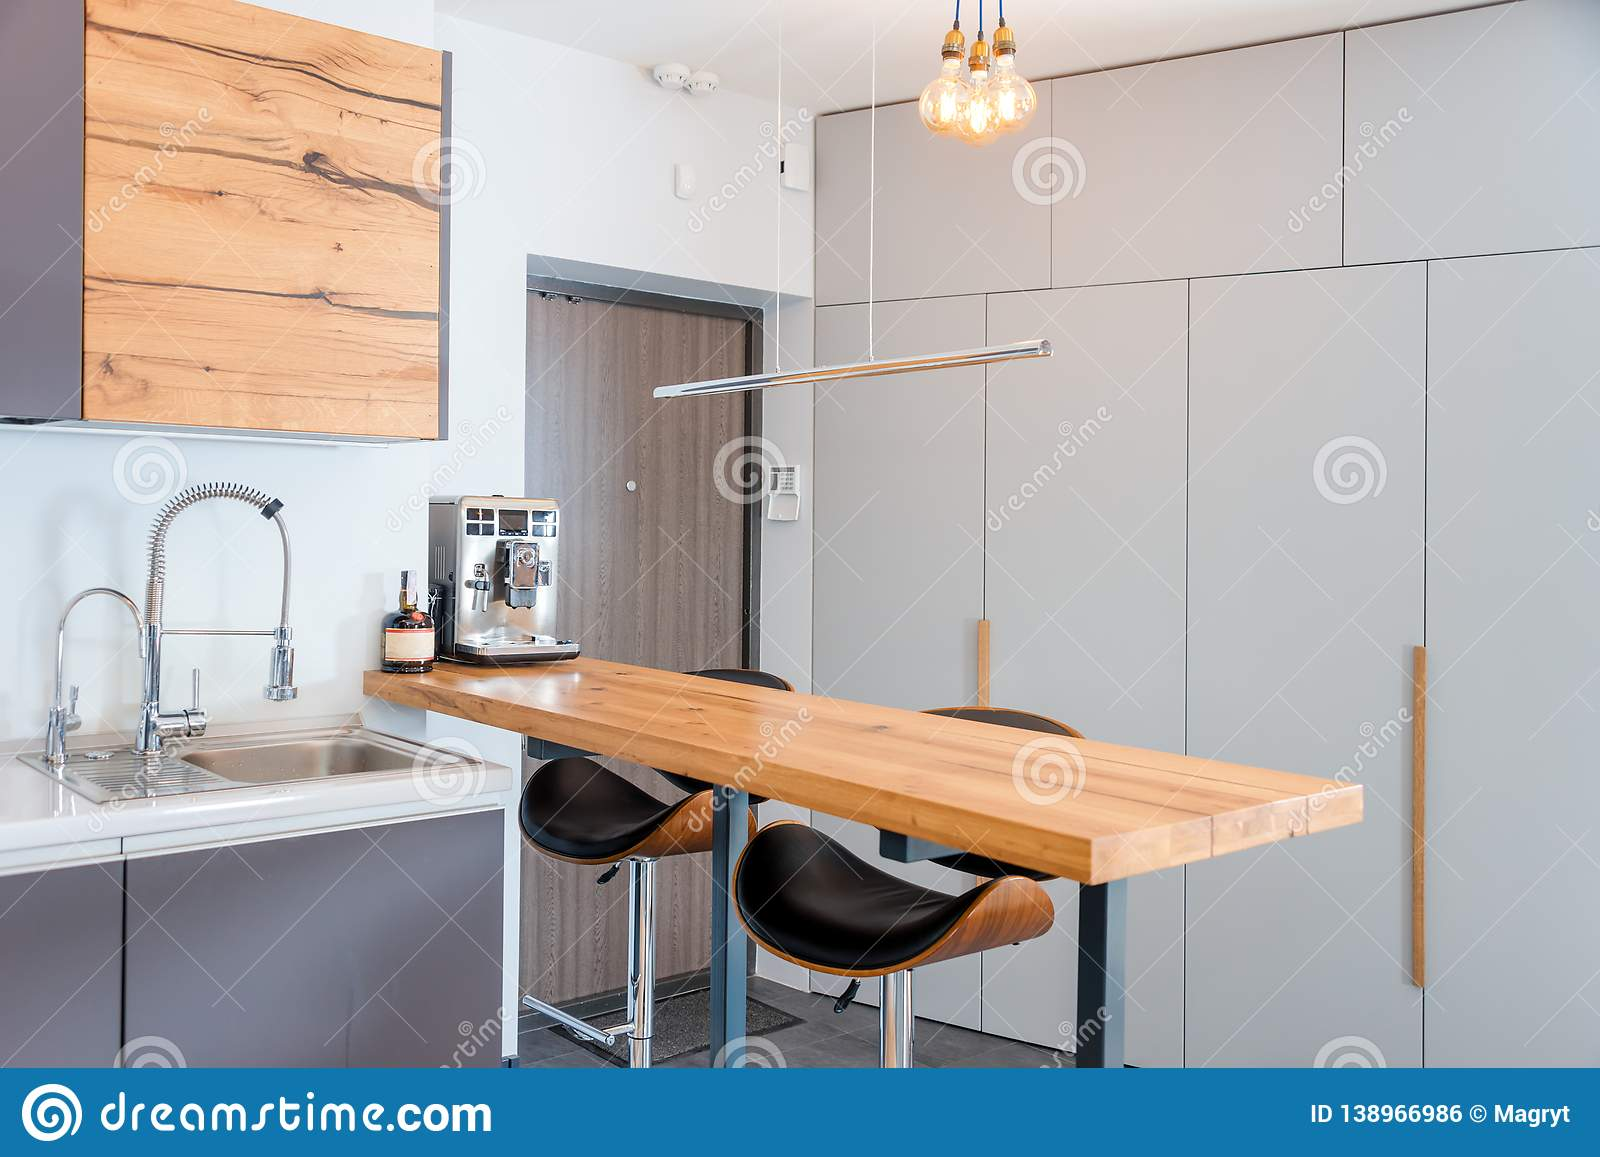 Modern Kitchen Interior With Lights On Brown Wooden Table And Bar Stools Coffee Machine Contemporary Interior With Stock Photo Image Of Apartment Luxury 138966986